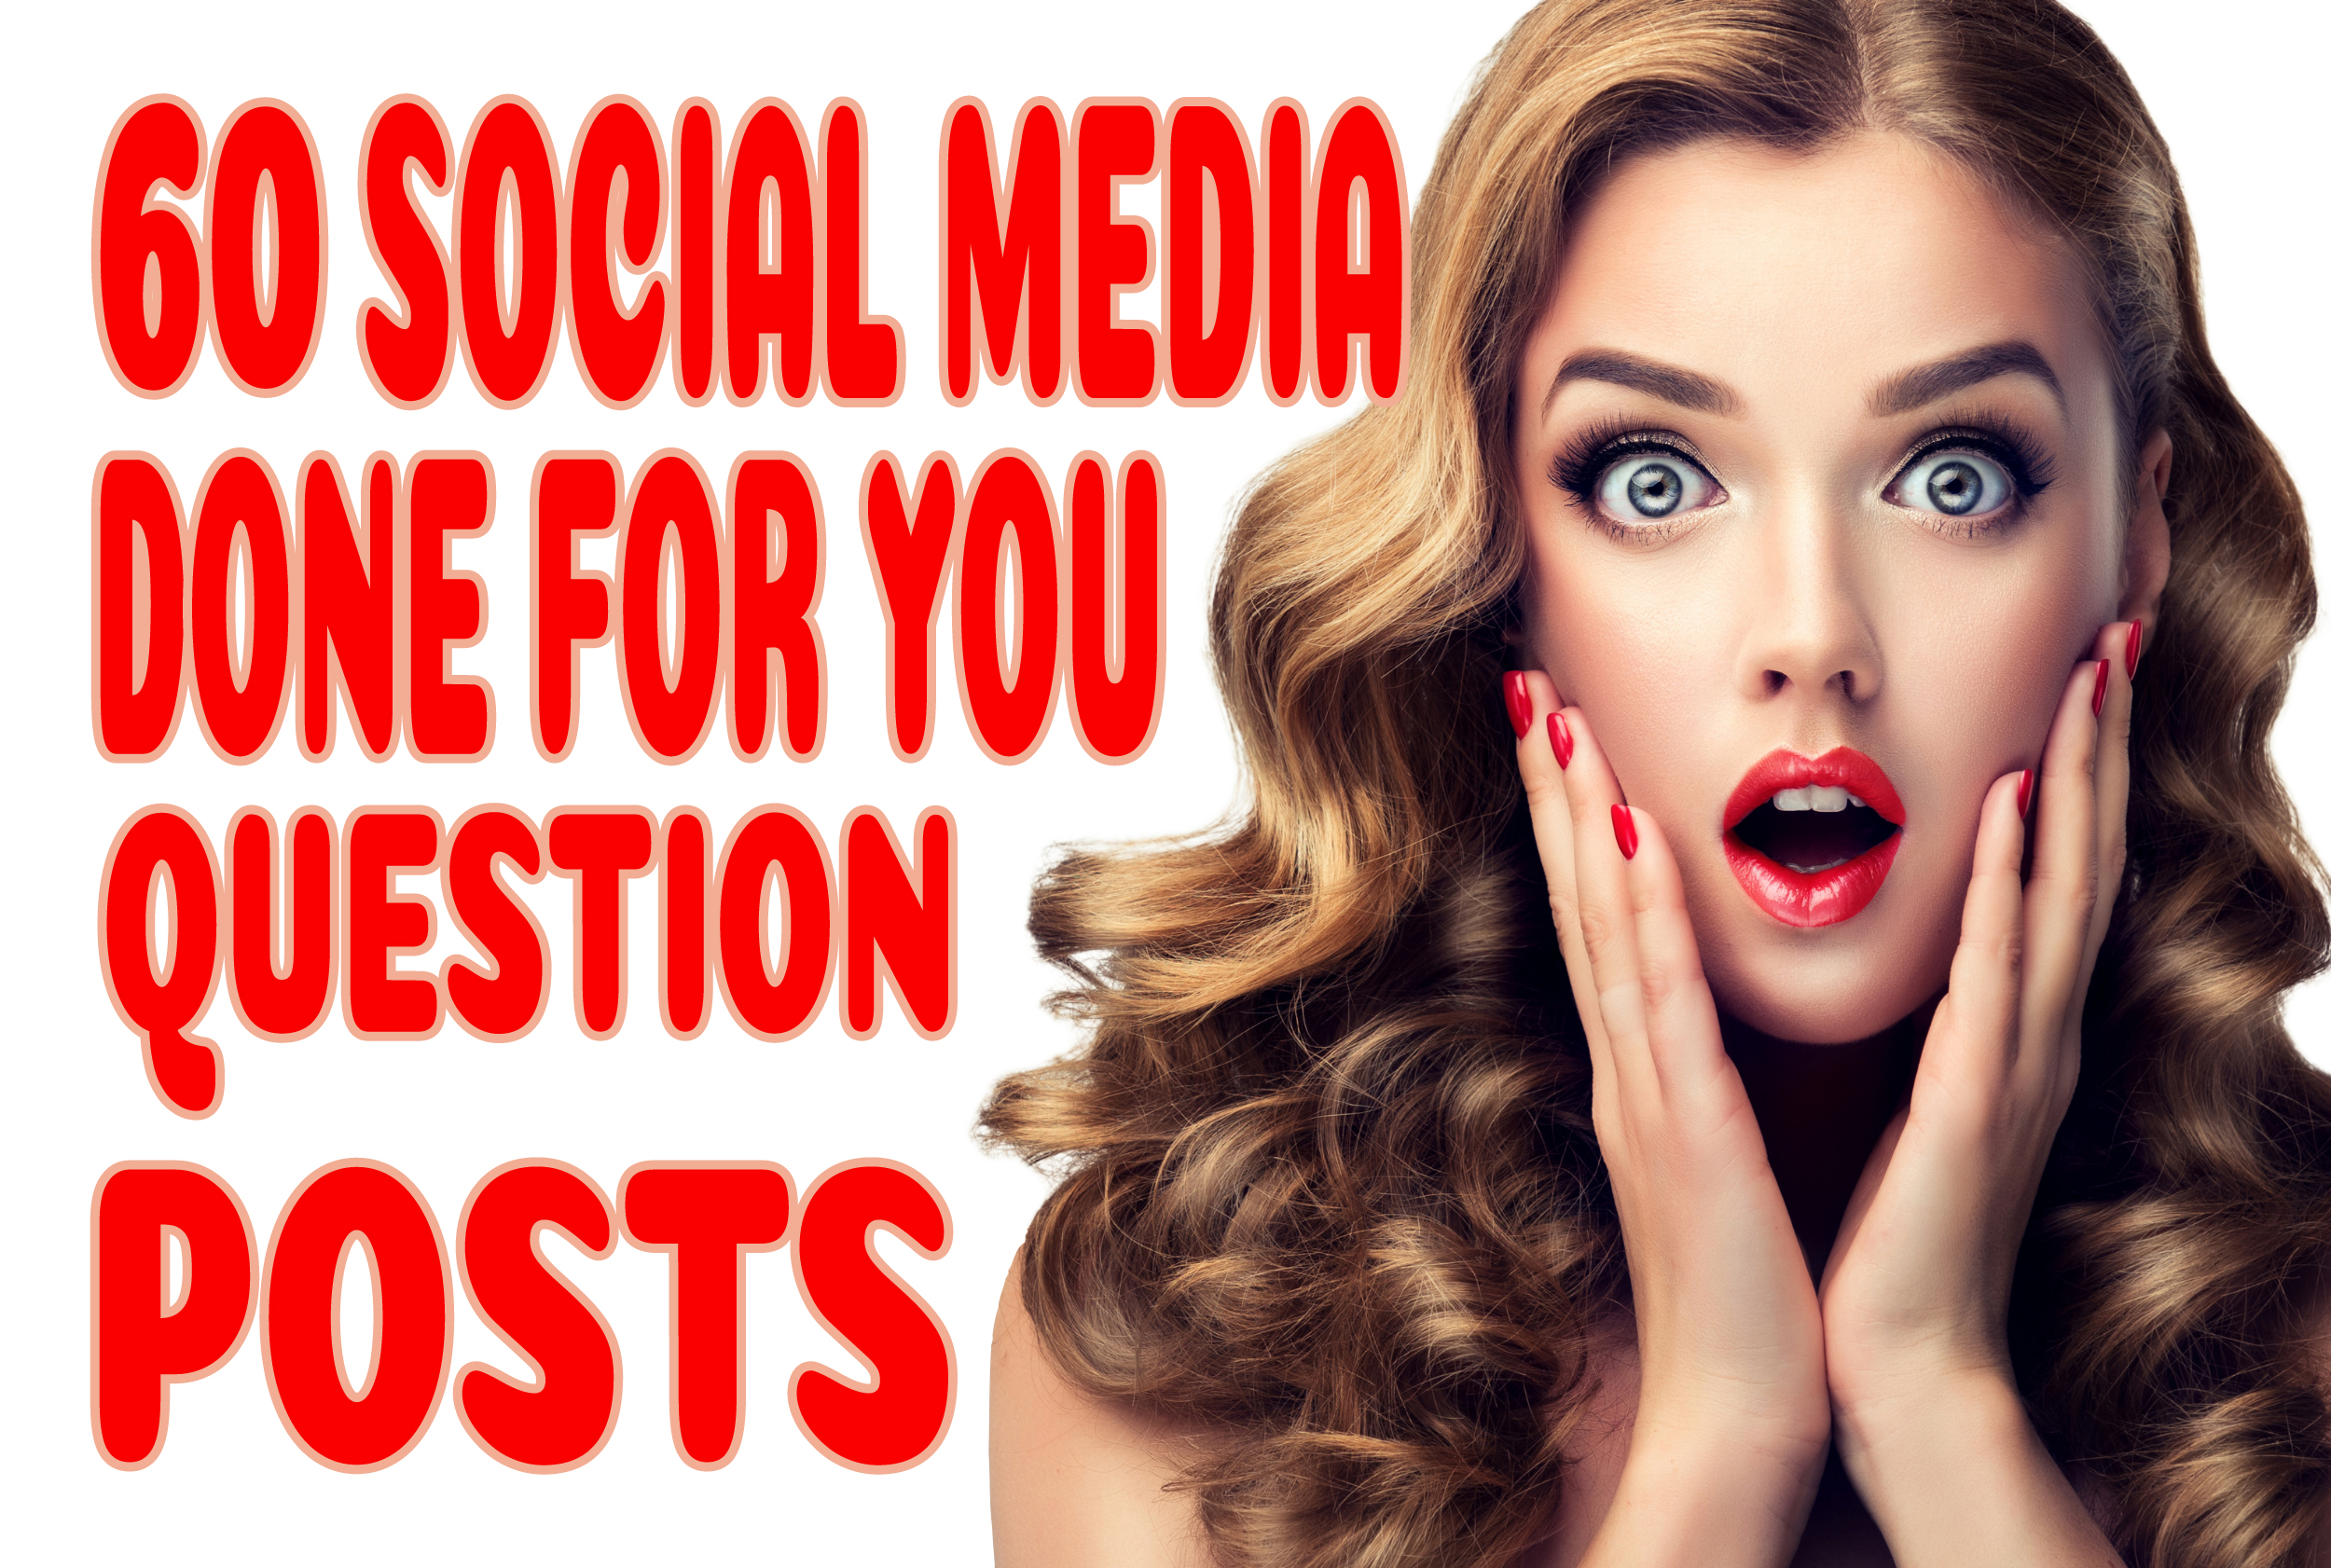 60 Social Media Done for You Question Posts